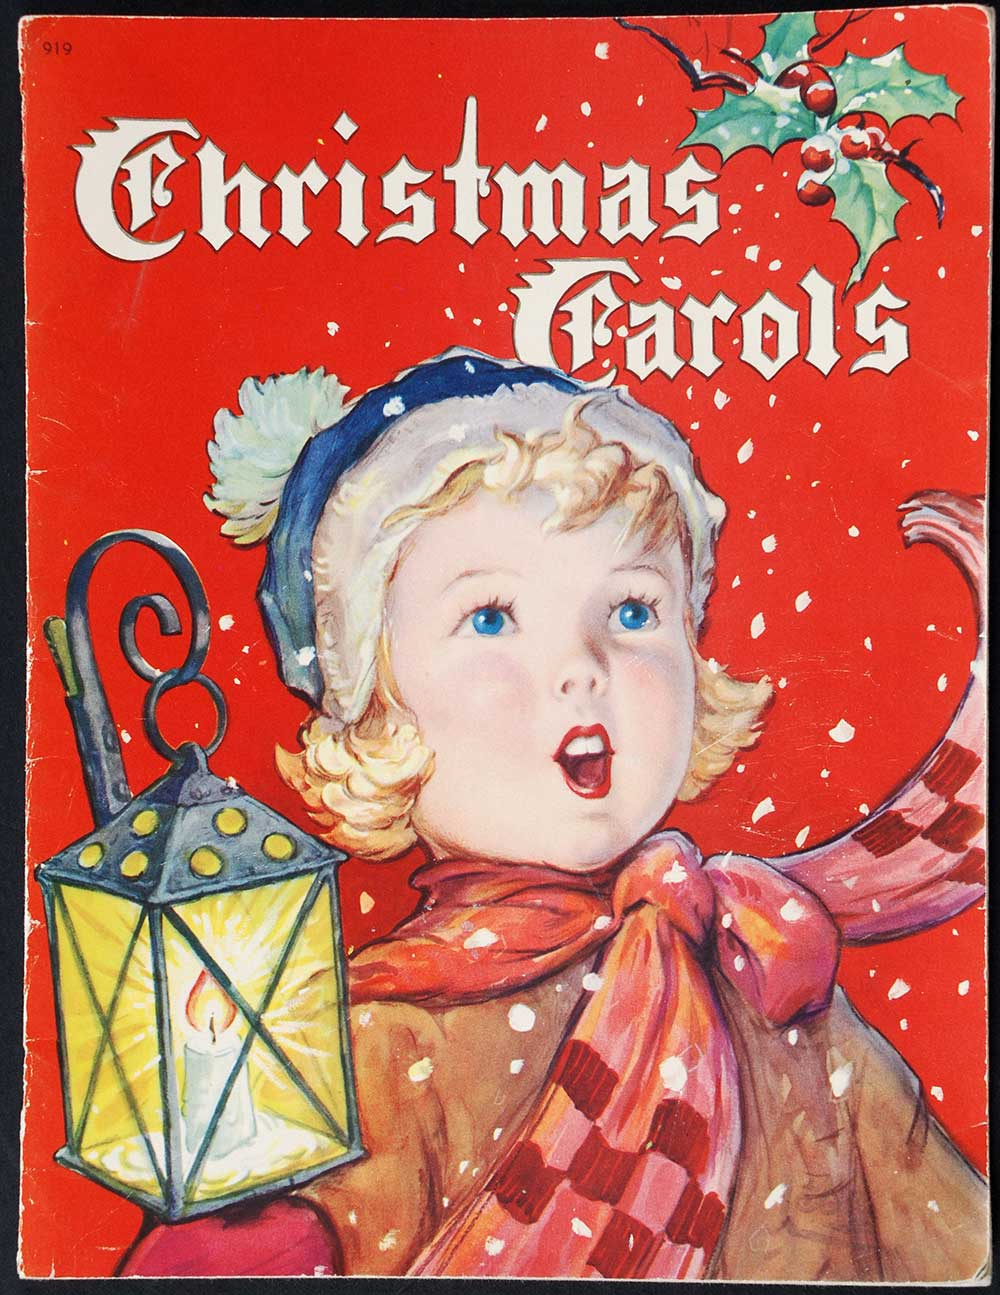 Karl Schulte (editor). <em>Christmas carols.</em> Illustrated by F.D. Lohman. Dunedin: Charles Begg & Co., 1942.